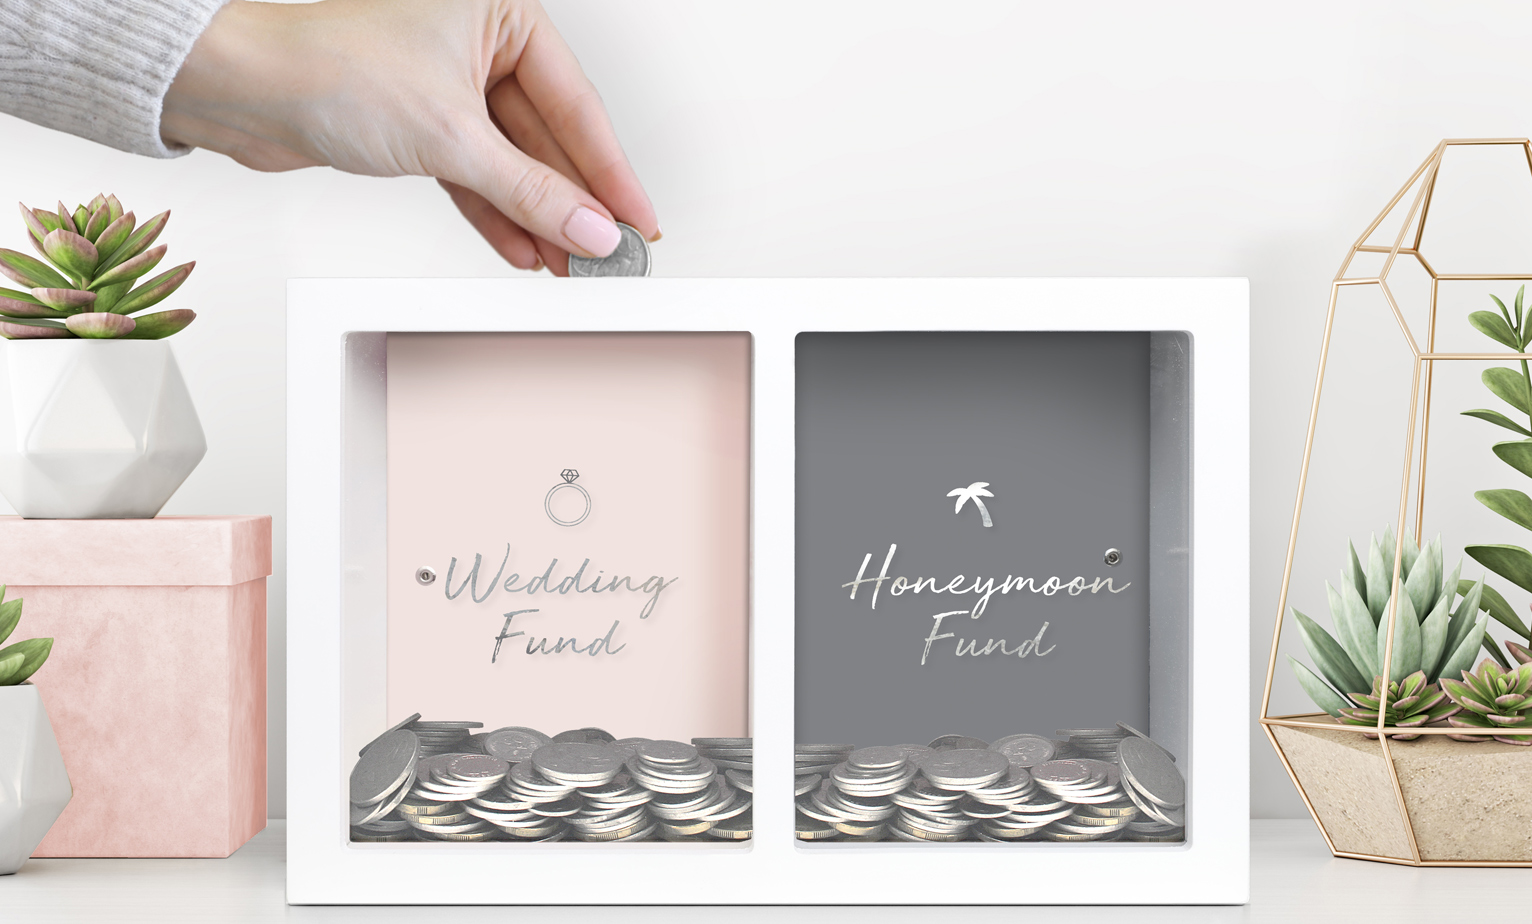 Gorgeous gifts for the happy couple